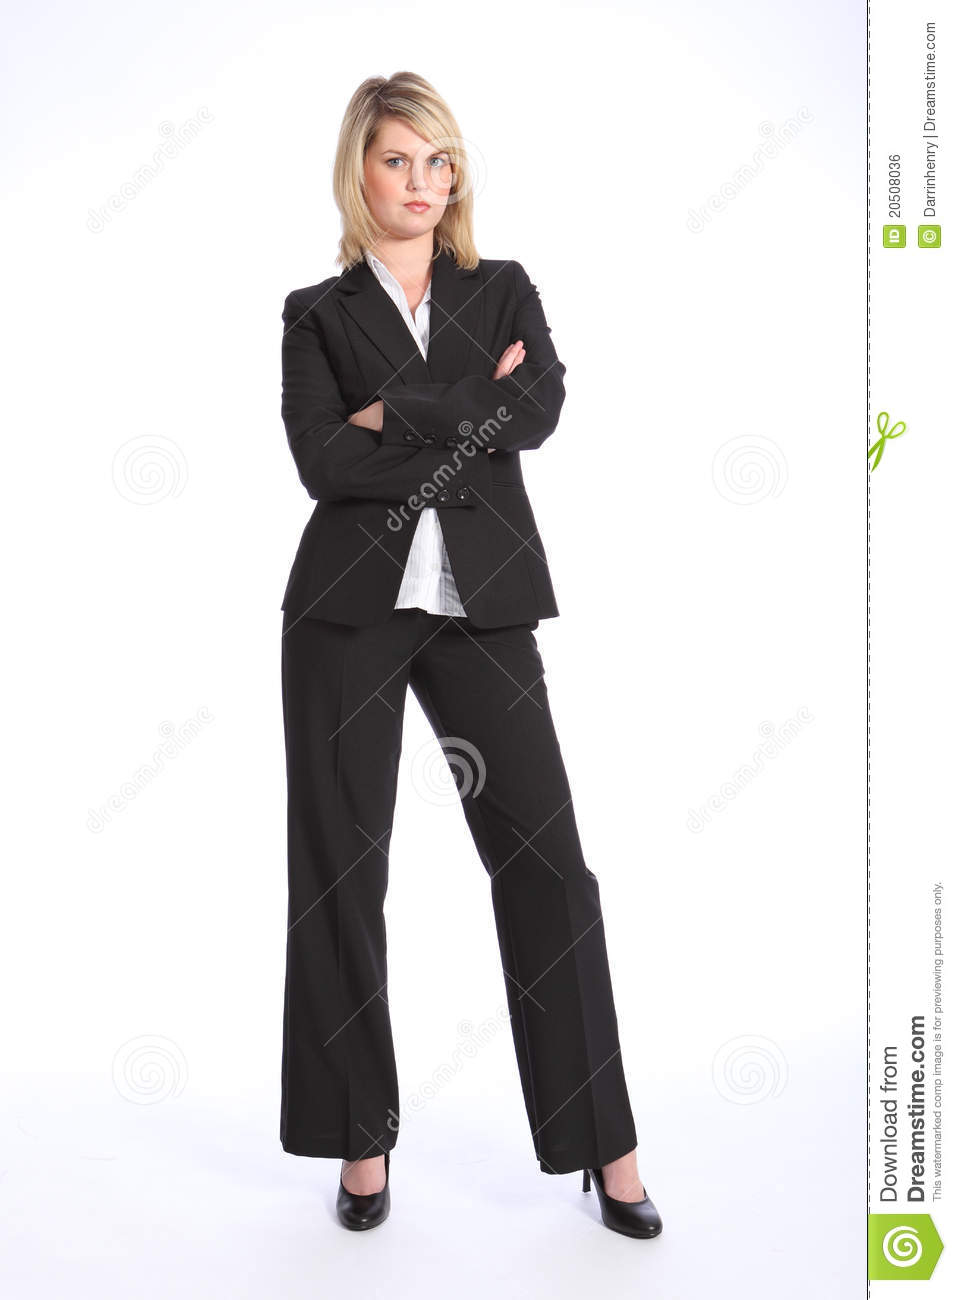 Serious blonde woman in business suit arms folded